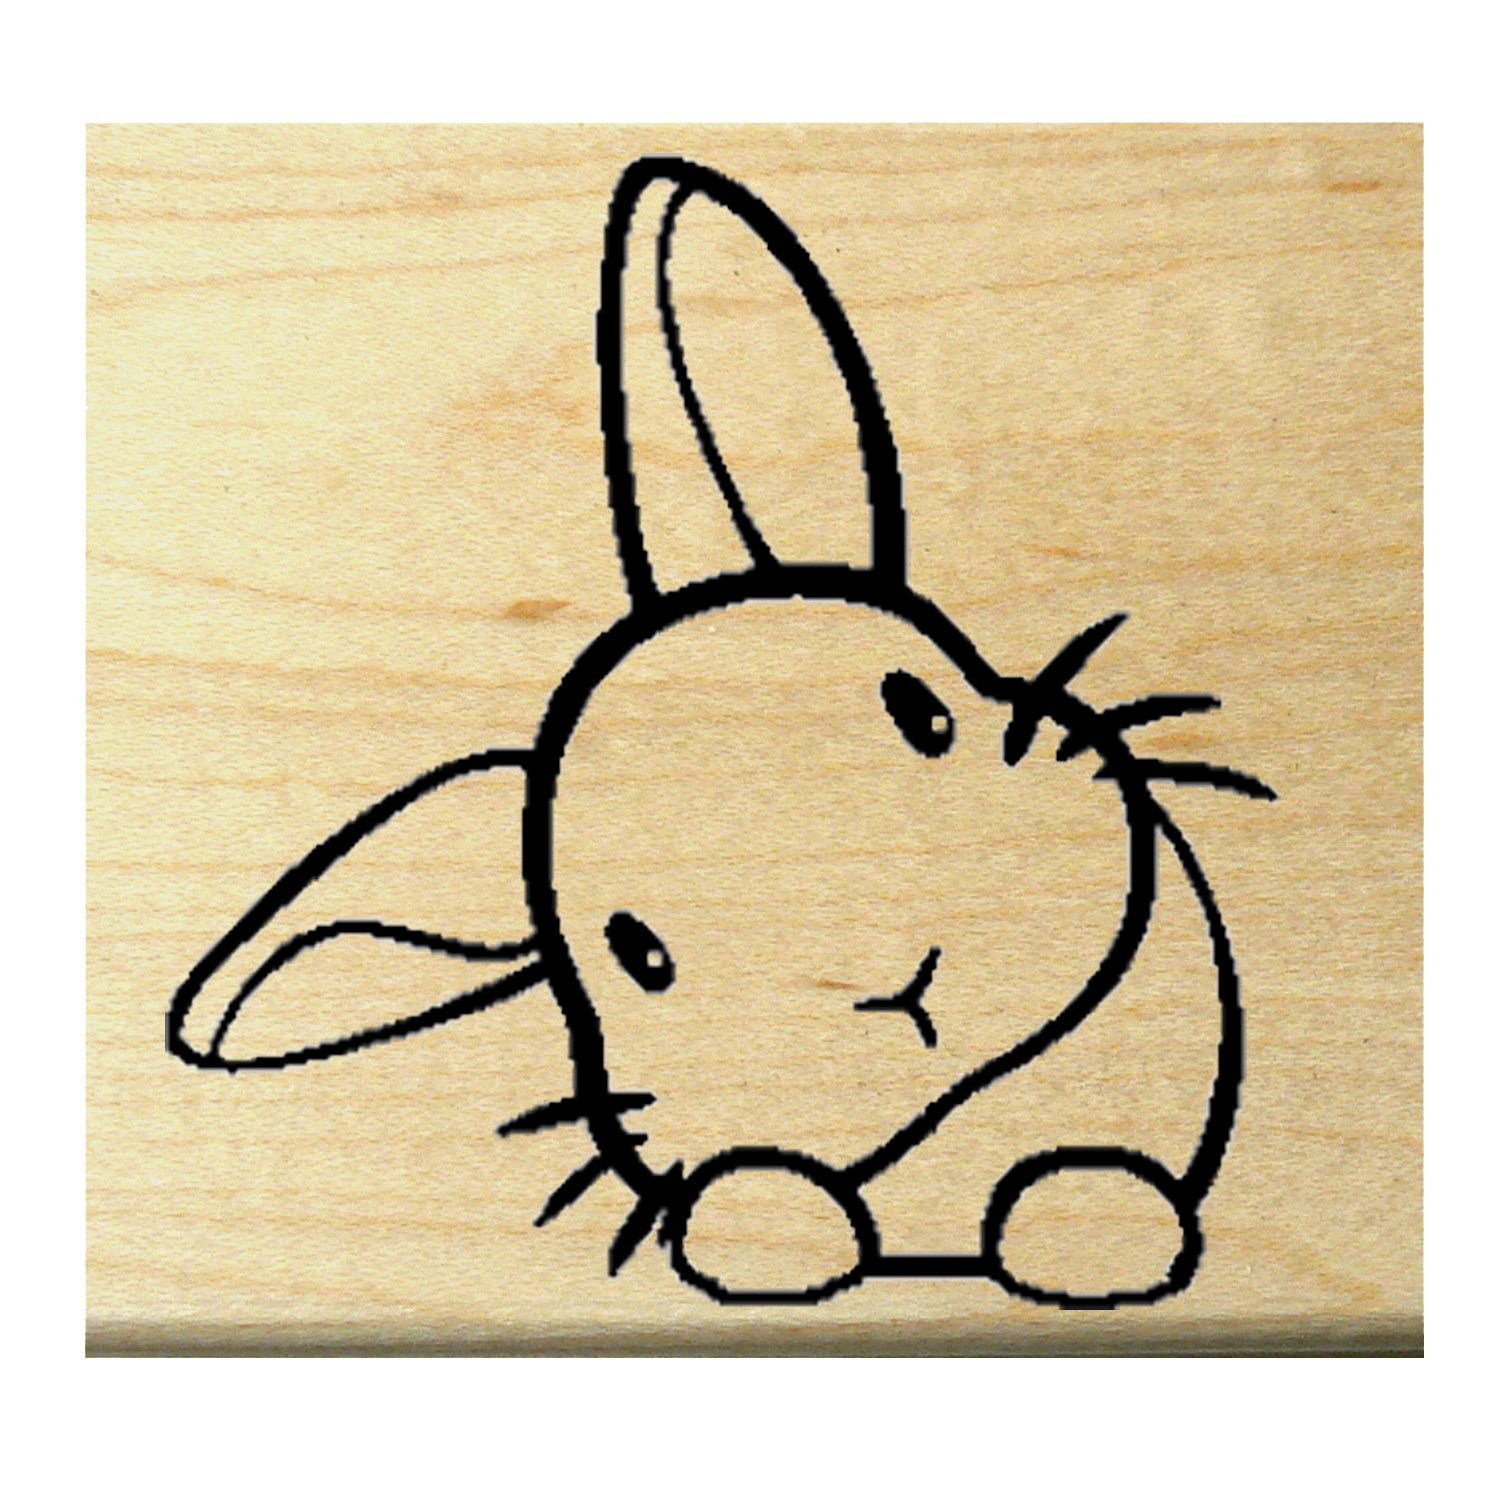 Q20 Bunny Miniature Rubber Stamp Stamp, Miniatures